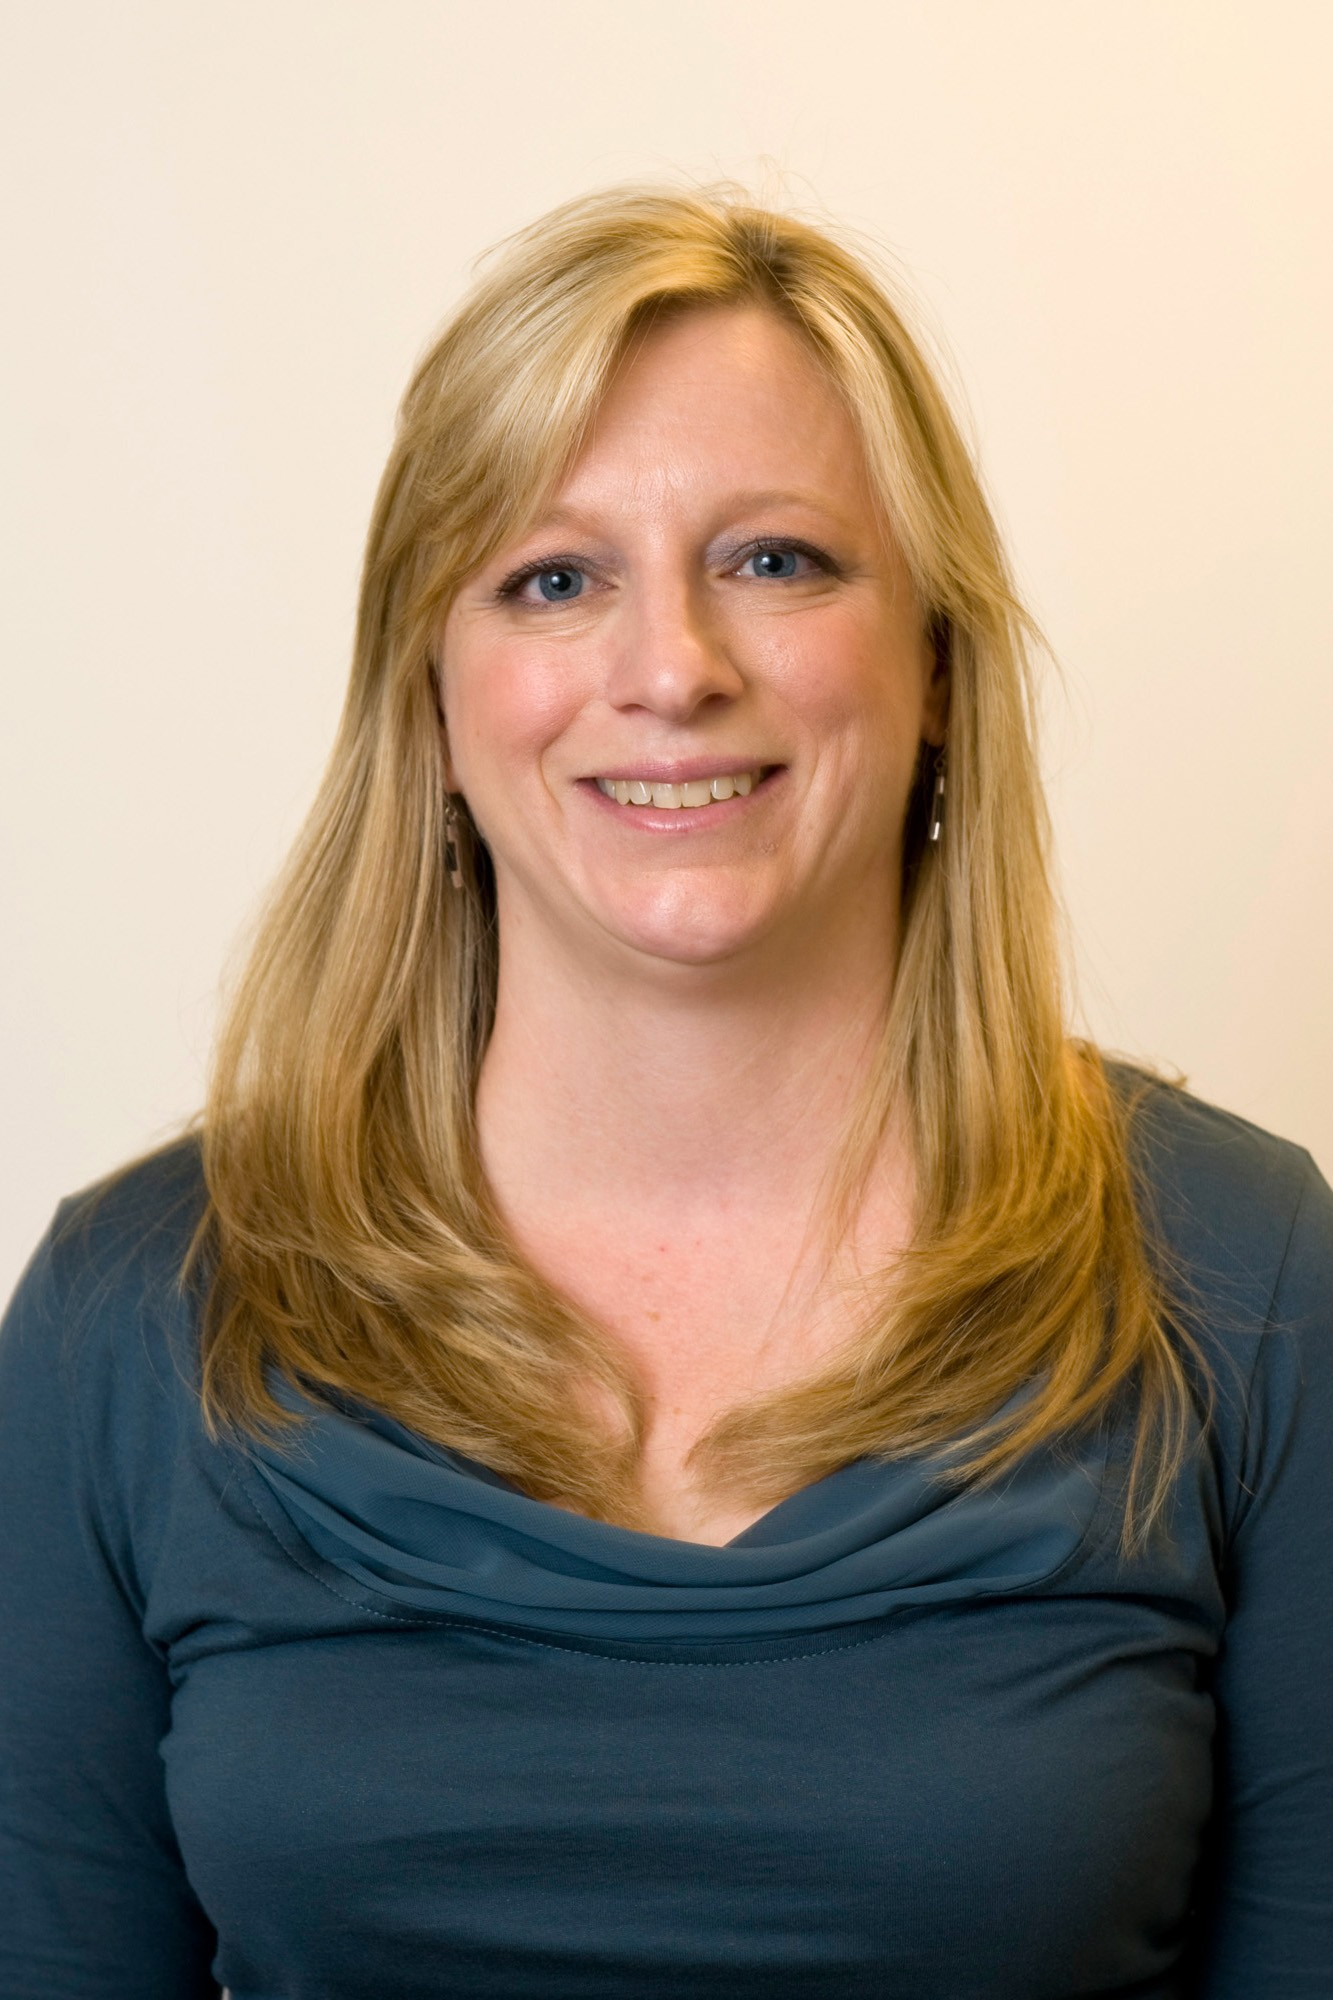 Photo of Christa M. Malinak, M.D.